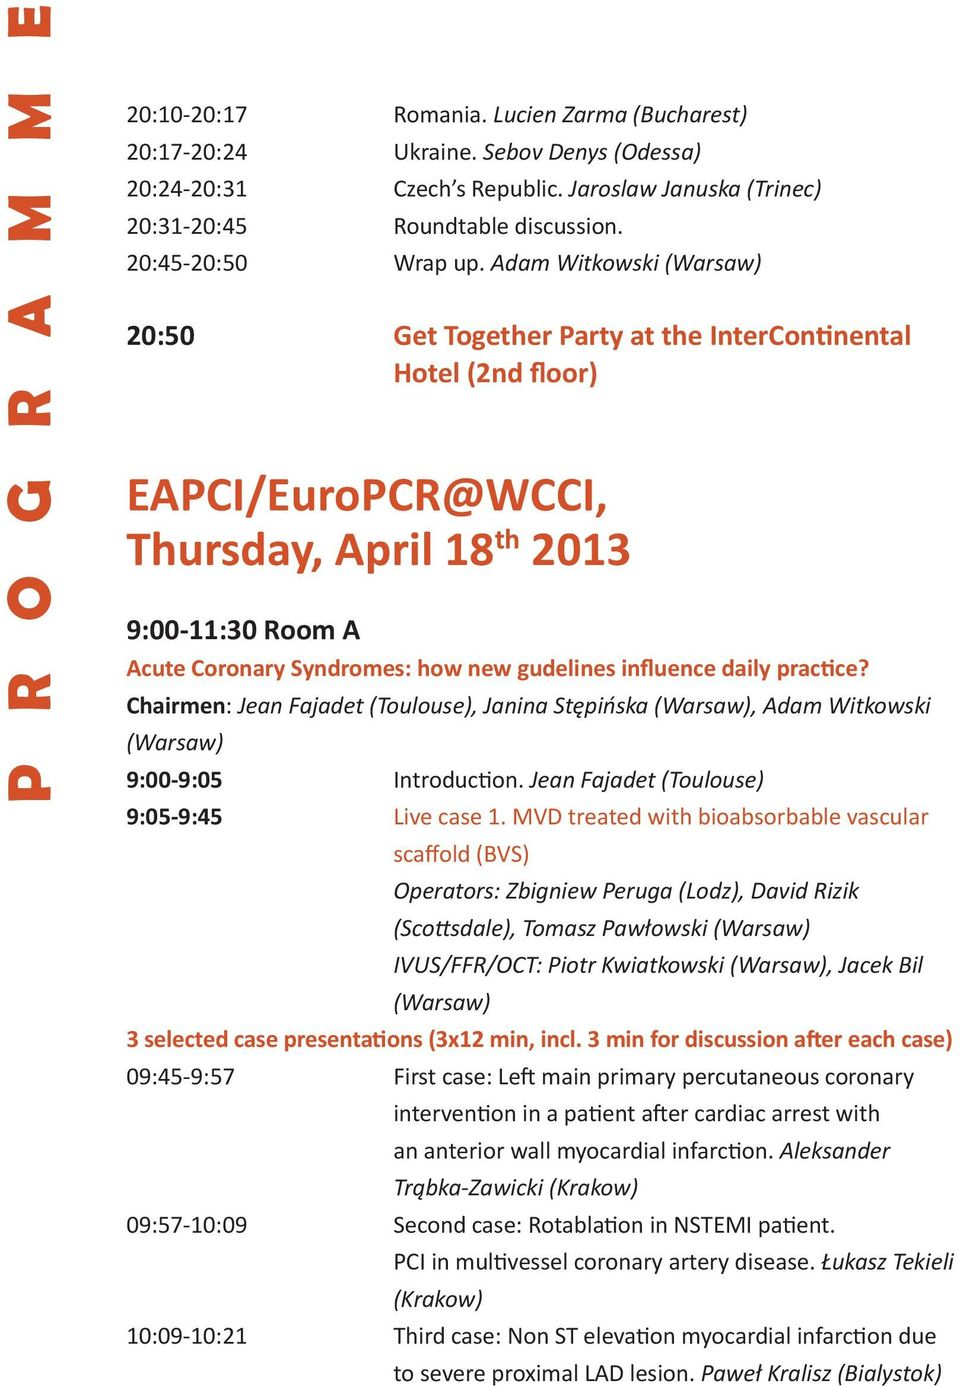 Adam Witkowski 20:50 Get Together Party at the InterContinental Hotel (2nd floor) EAPCI/EuroPCR@WCCI, Thursday, April 18 th 2013 9:00-11:30 Room A Acute Coronary Syndromes: how new gudelines